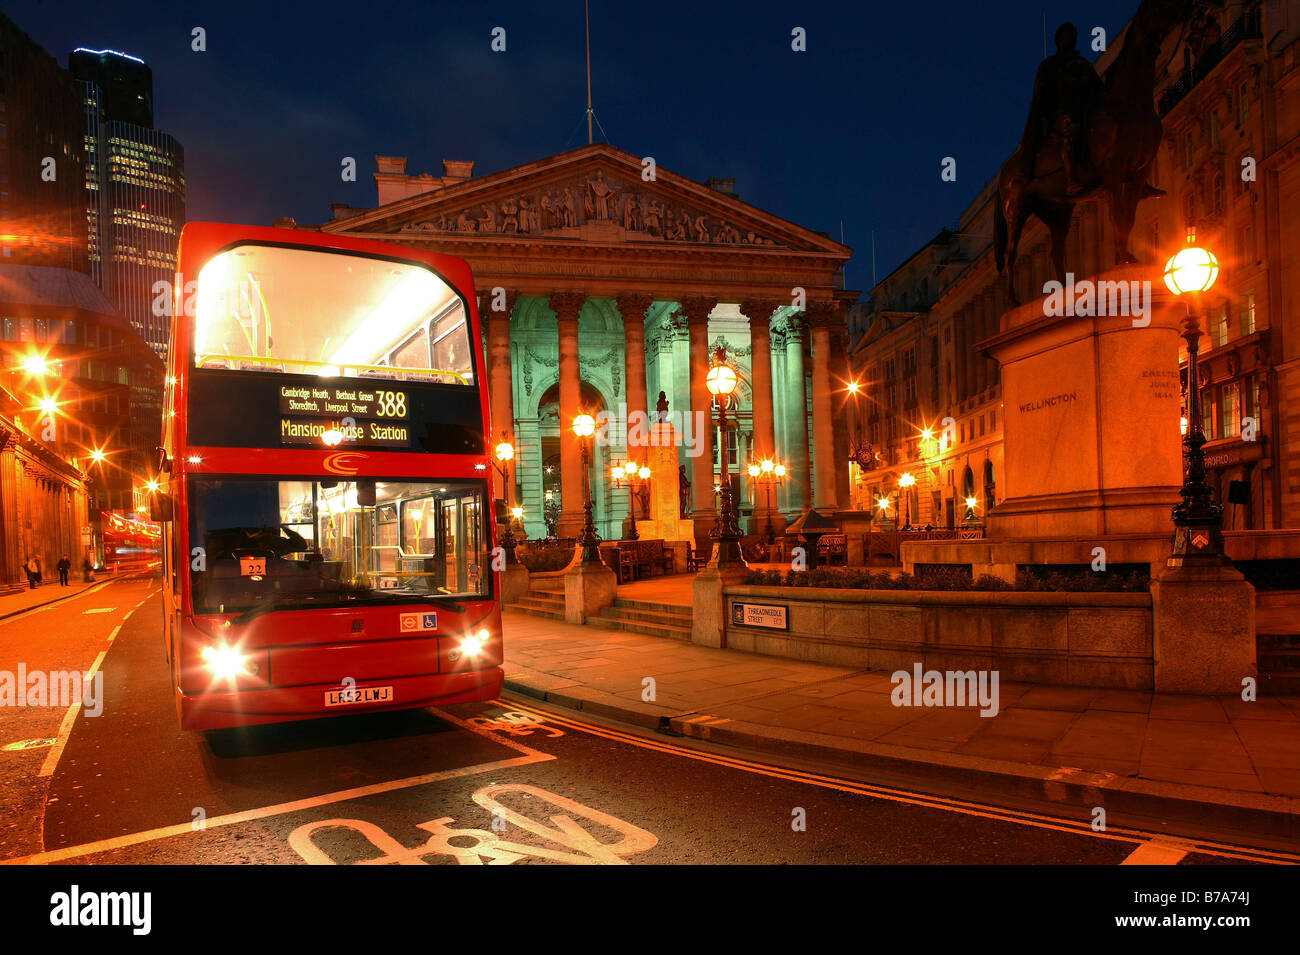 Double-decker, Royal Exchange in the Threadneedle Street at night in London, England, Great Britain, Europe - Stock Image